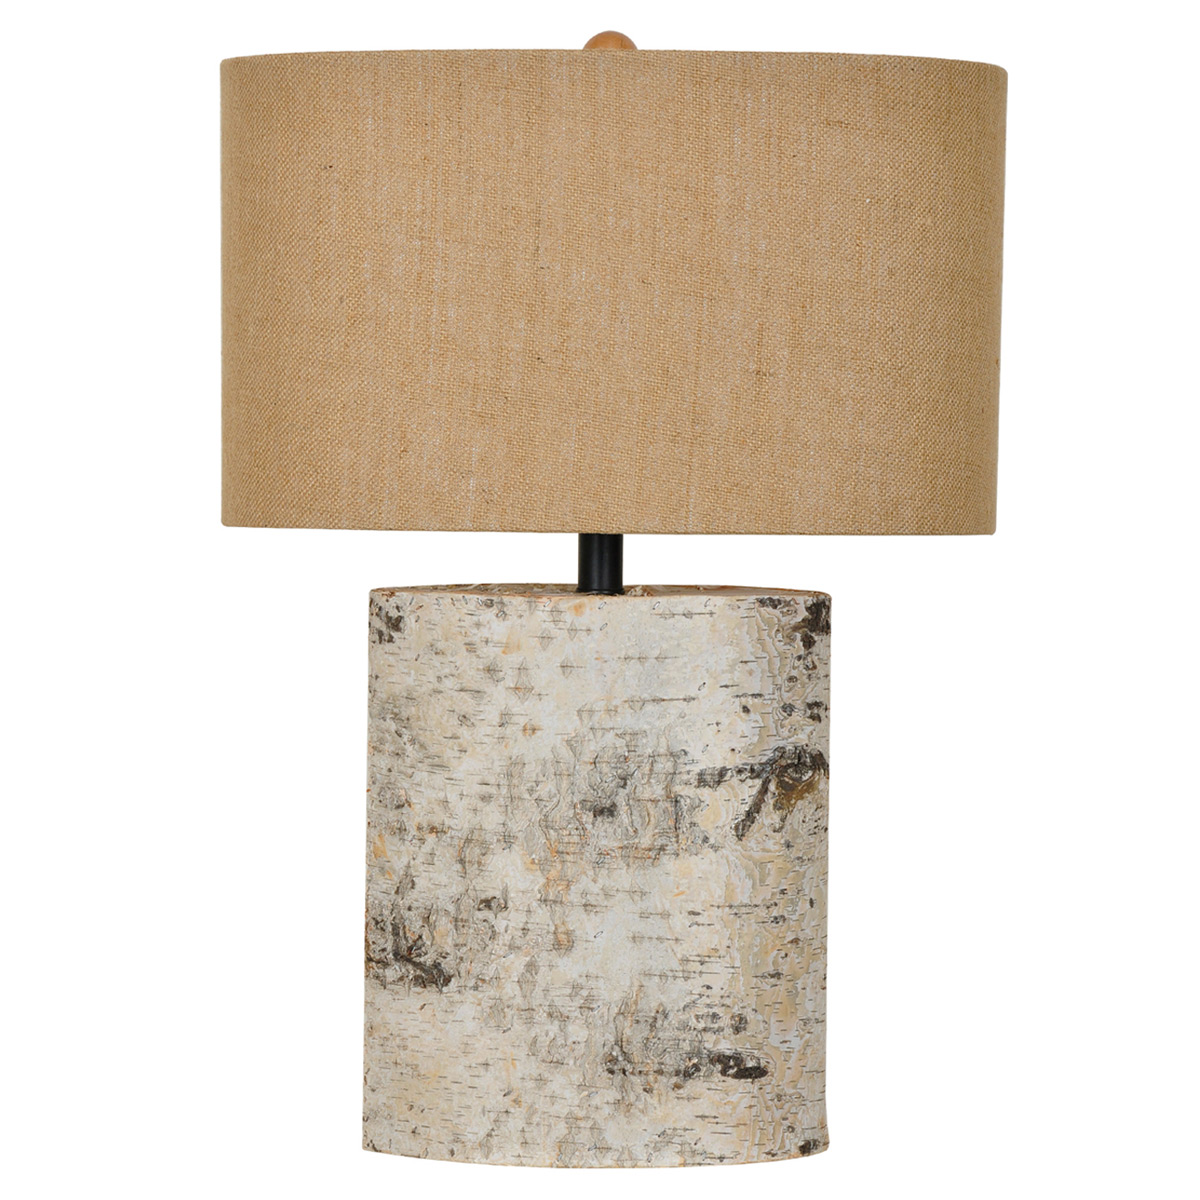 Distressed White Wood Chunk Table Lamp